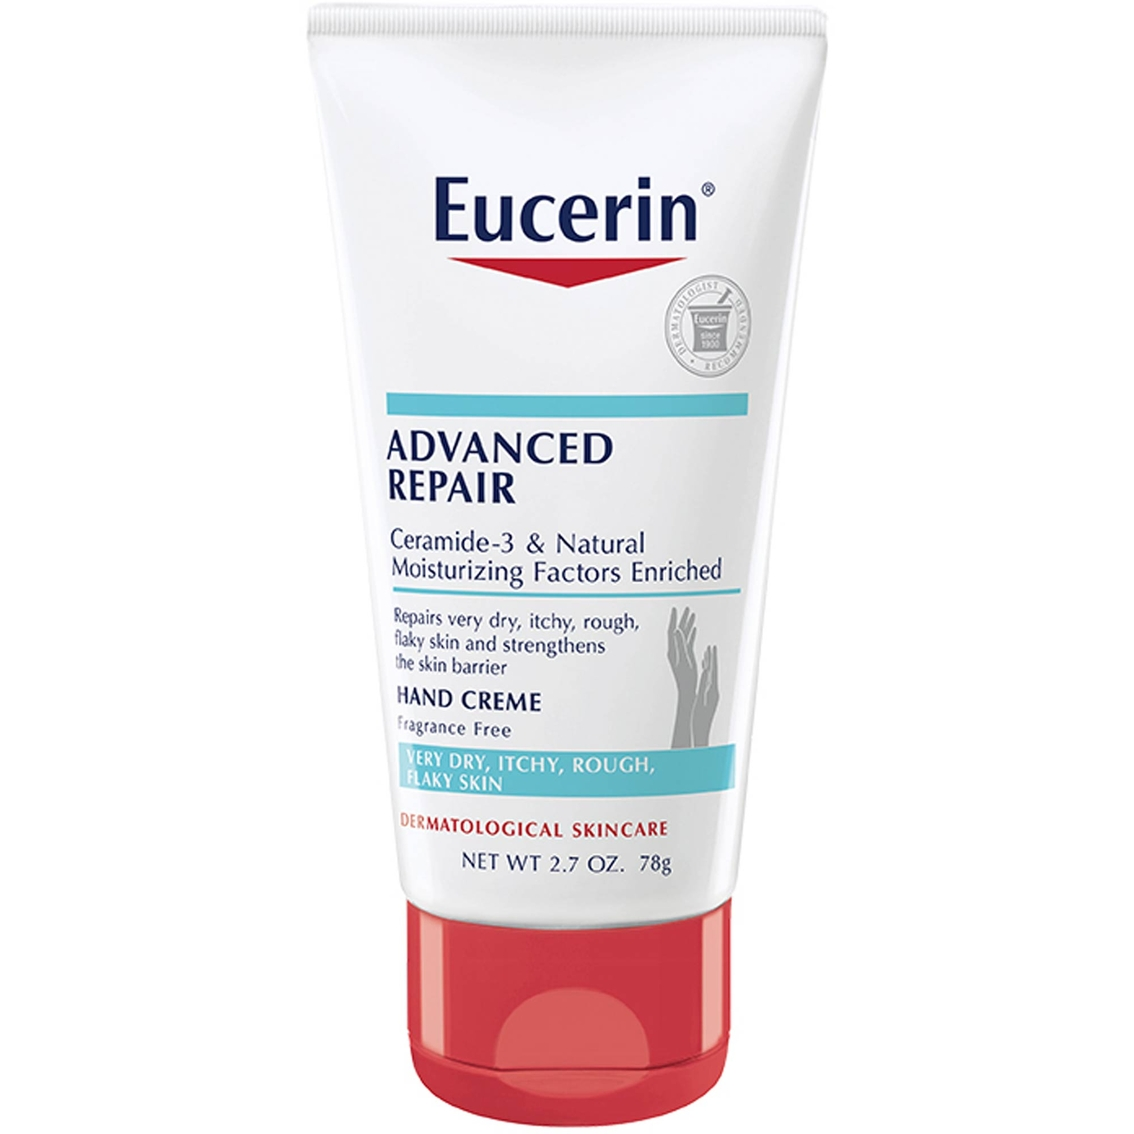 Eucerin intensive repair extra enriched hand cream